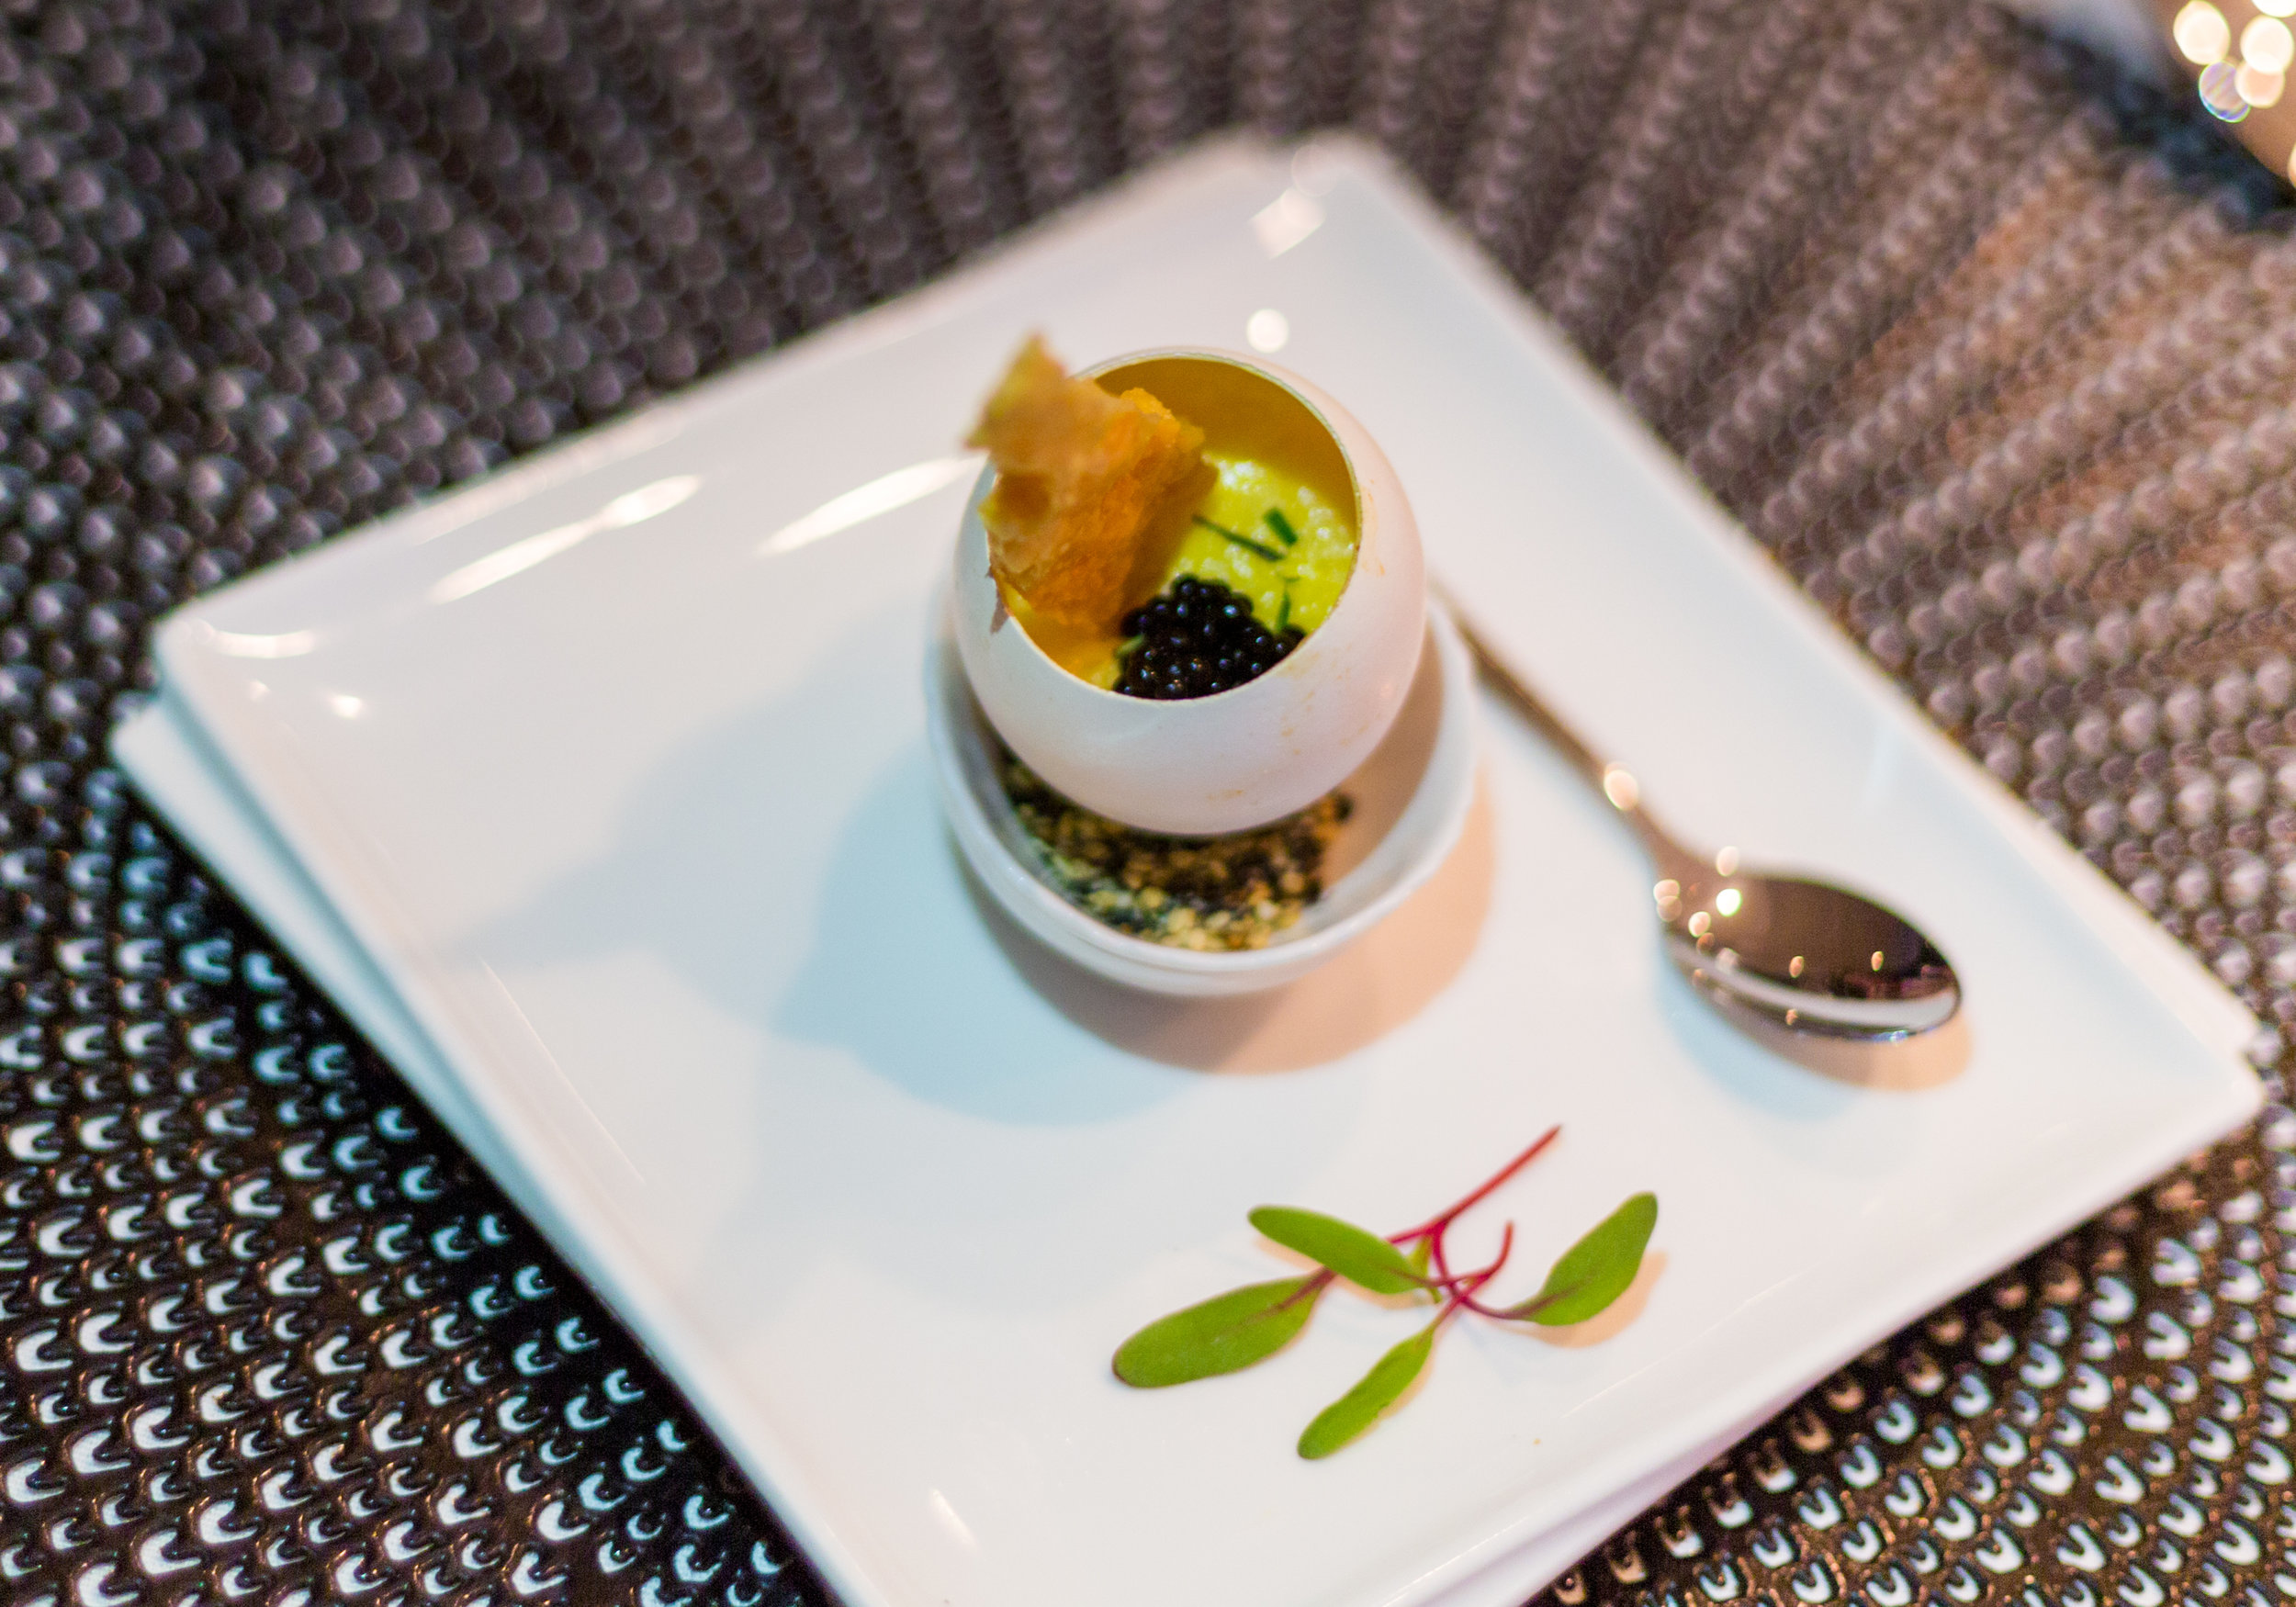 Eggs and bacon amuse bouche—egg custard flavored with bacon, slowly oven-cooked and topped with truffle pearls.